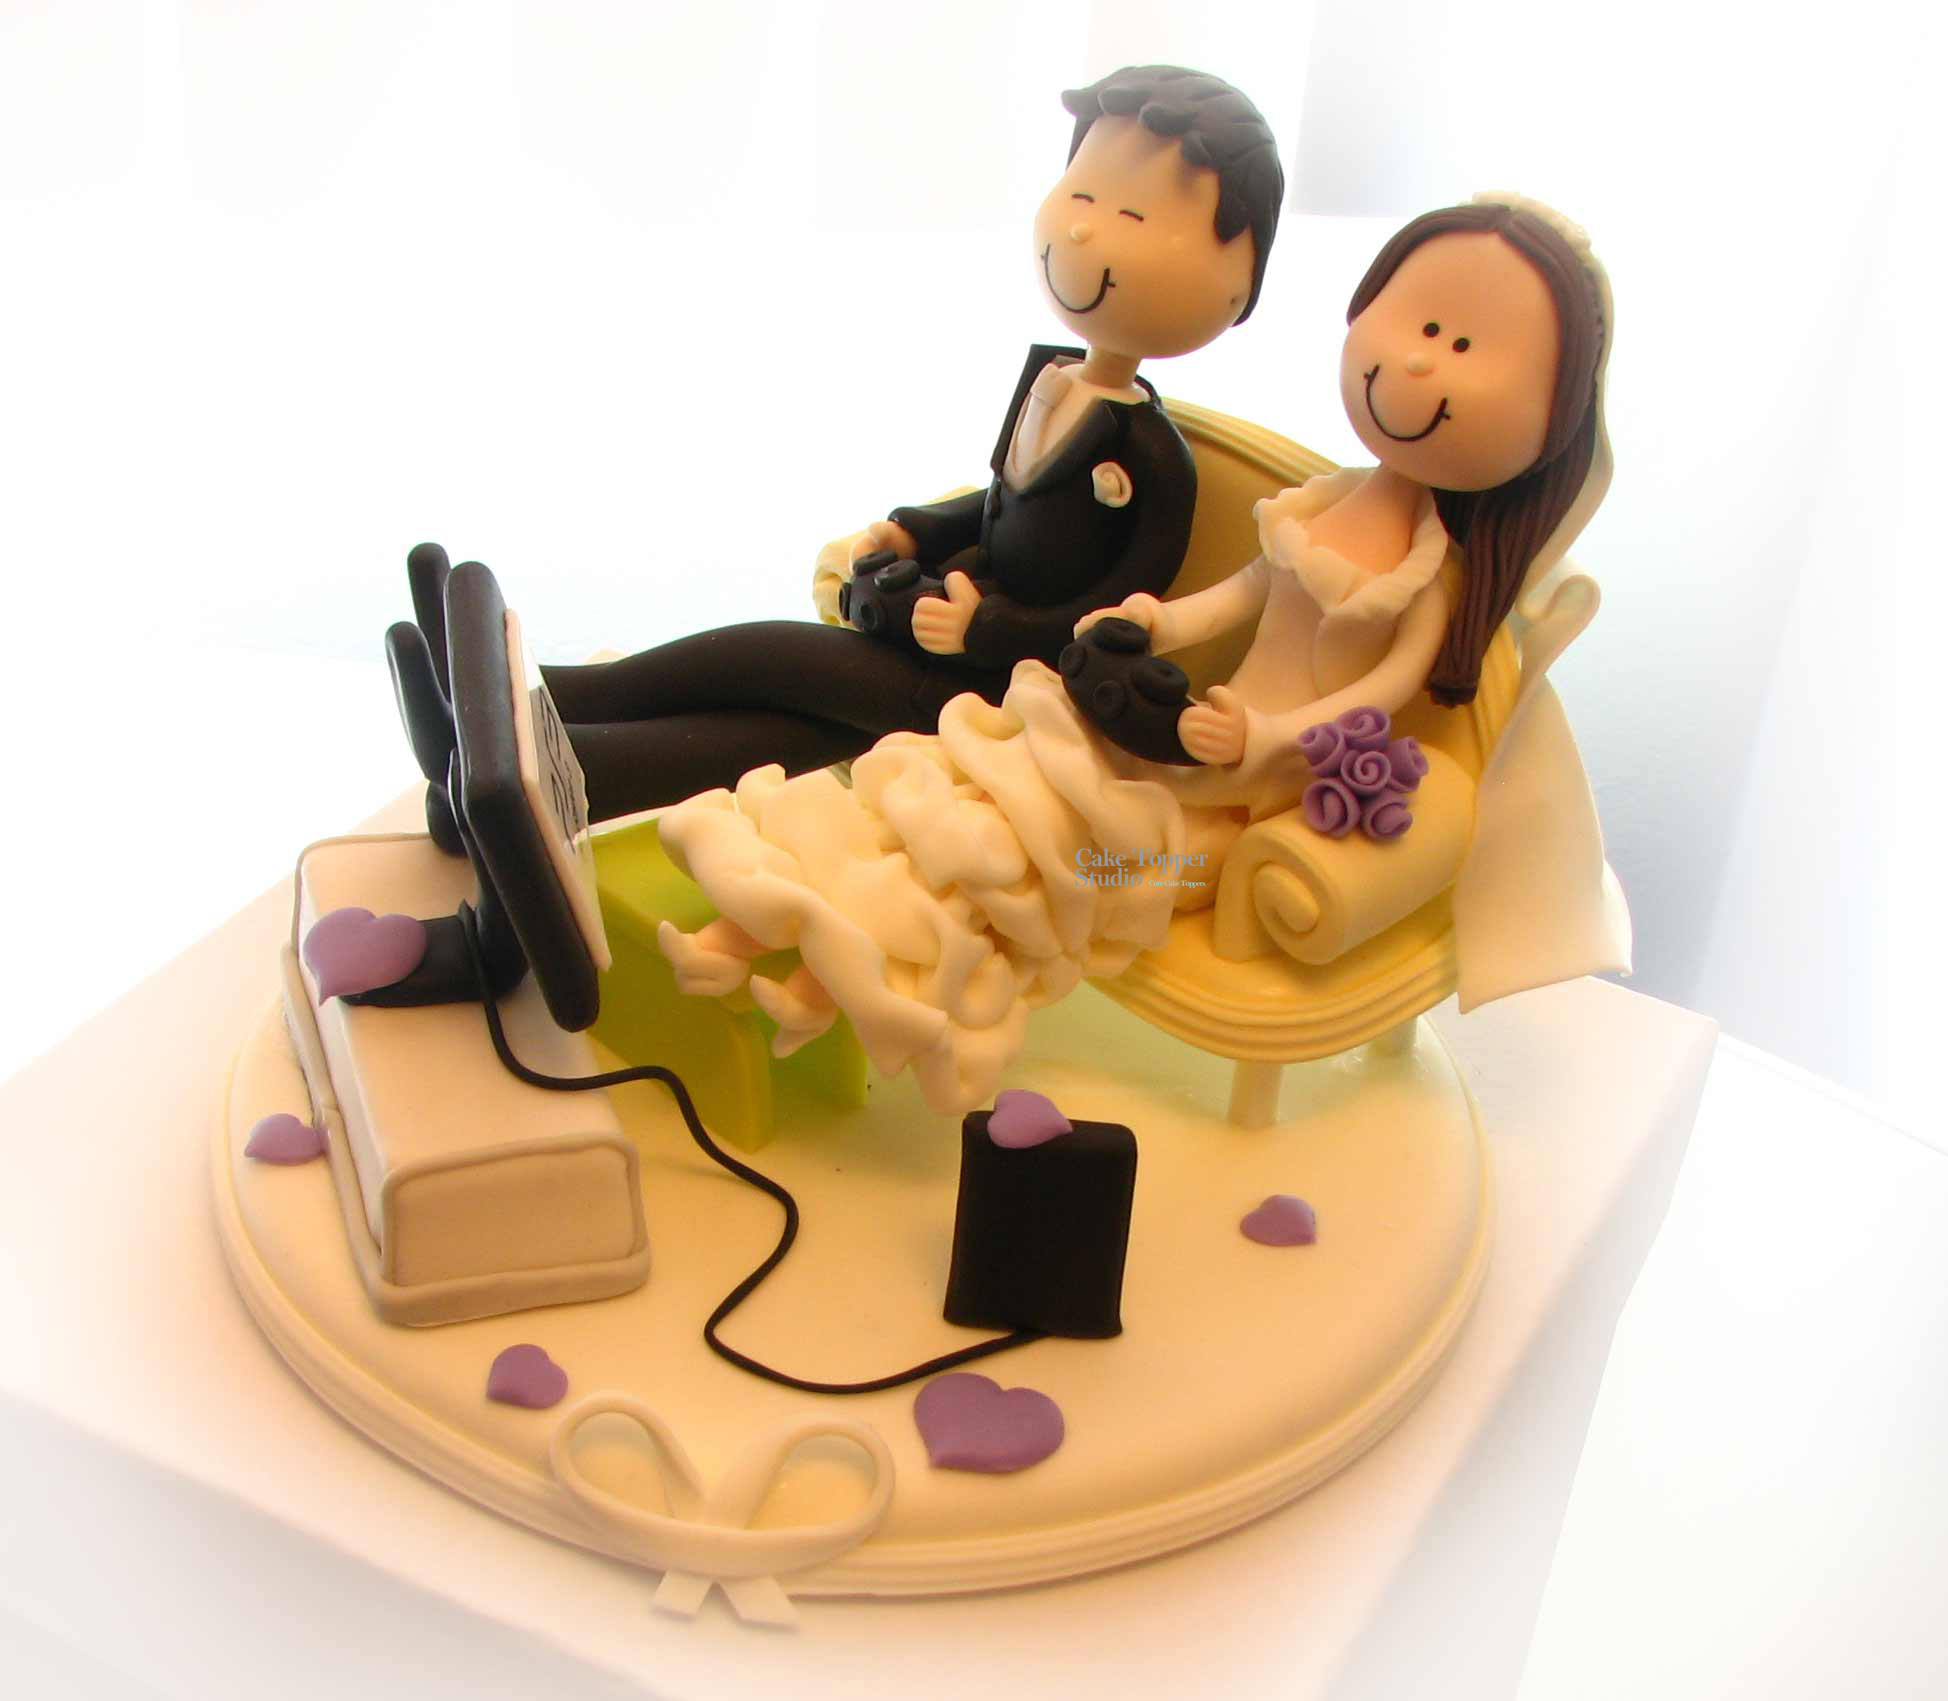 wedding-cake-topper-funny-playing-game-4